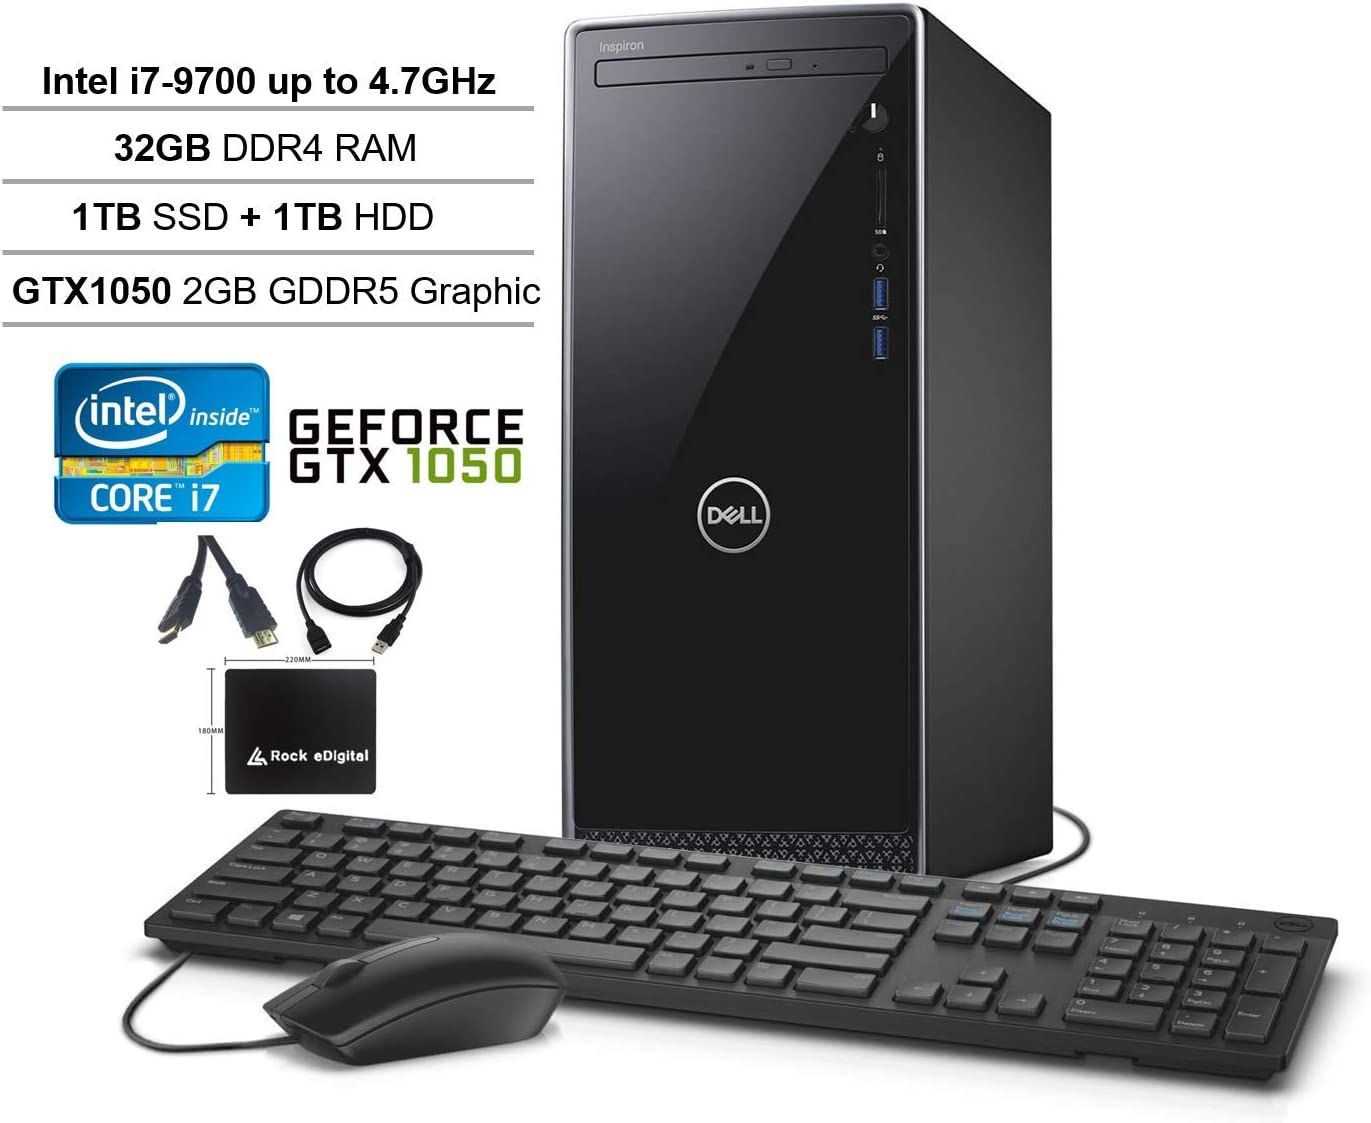 2020 Dell Inspiron Desktop Tower: 9th gen Intel 8-Core i7-9700, 32GB RAM, 1TB SSD + 1TB HDD Dual Drive, NVIDIA GeForce GTX 1050 Graphics, WiFi, Bluetooth, DVDRW, Win 10 w/Rock eDigital Accessories